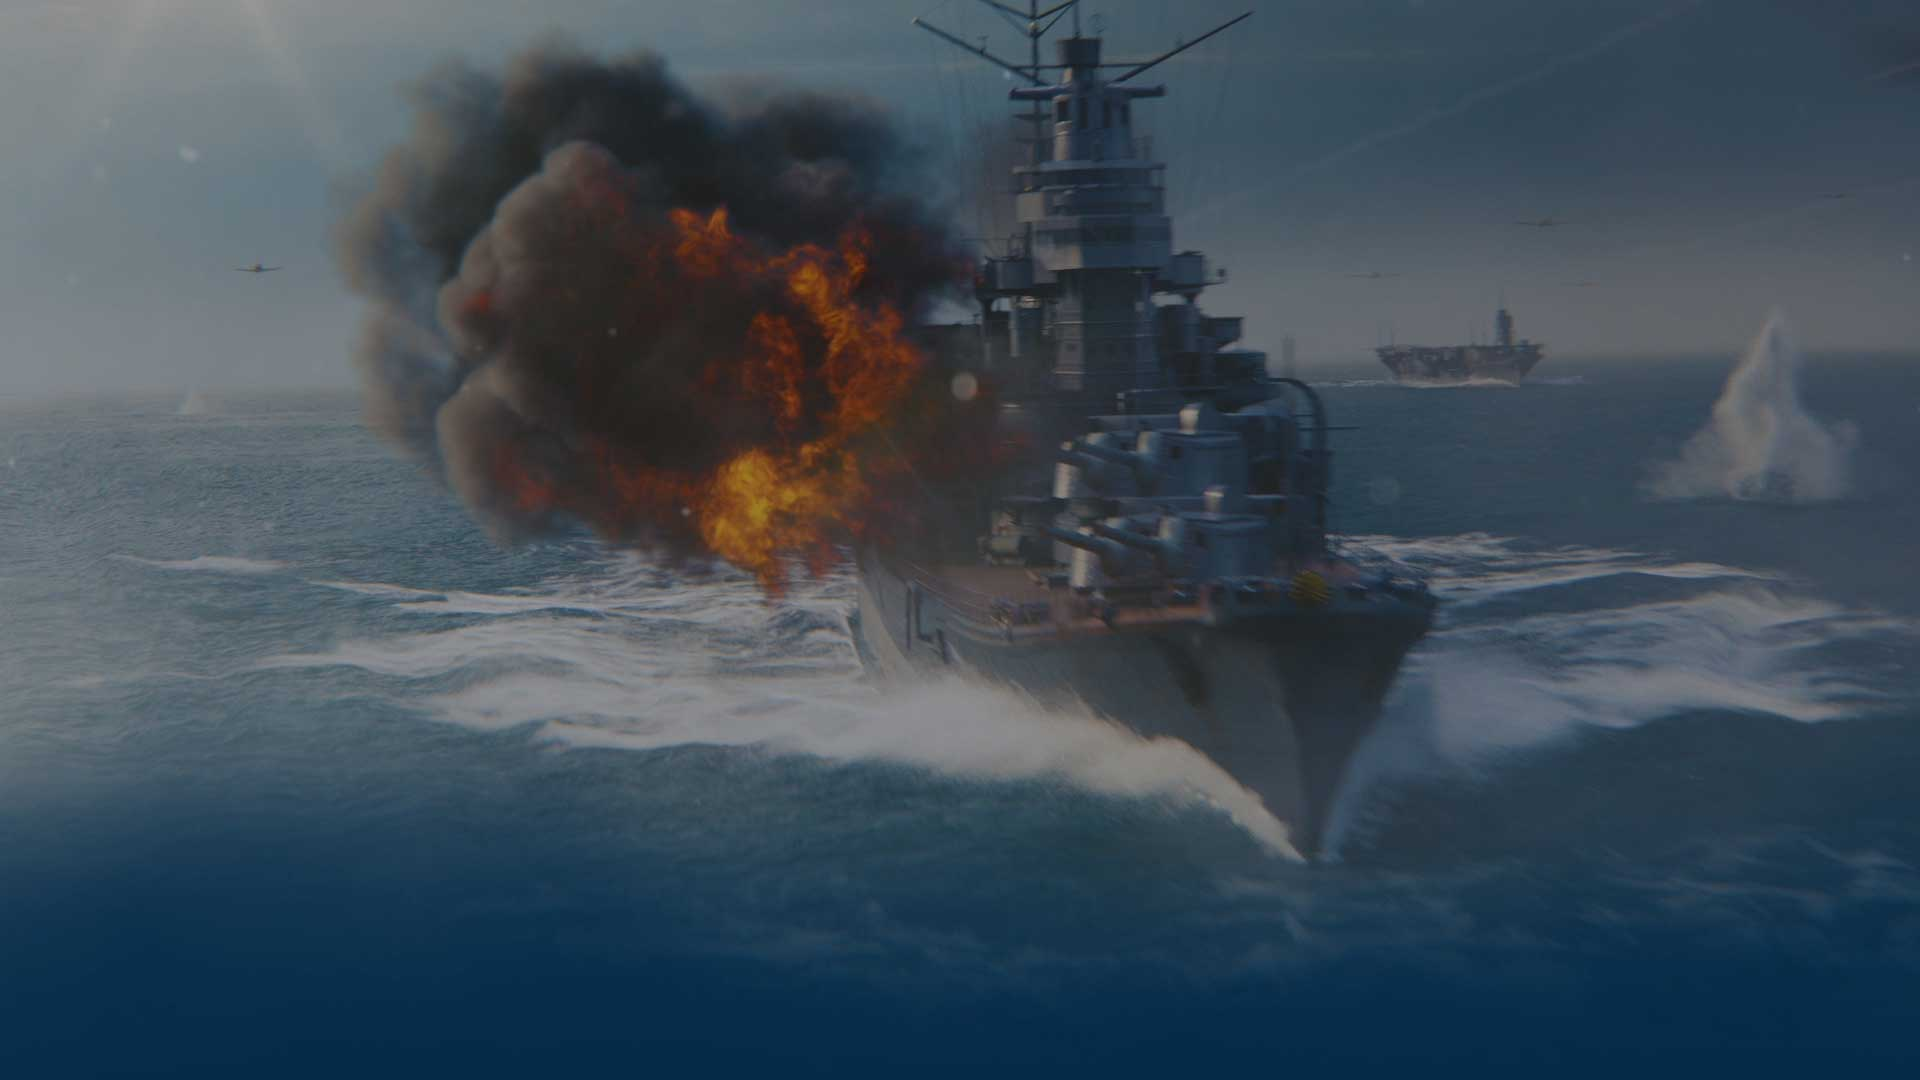 World of Warships Blitz—a mobile navy shooter for iOS and Android devices